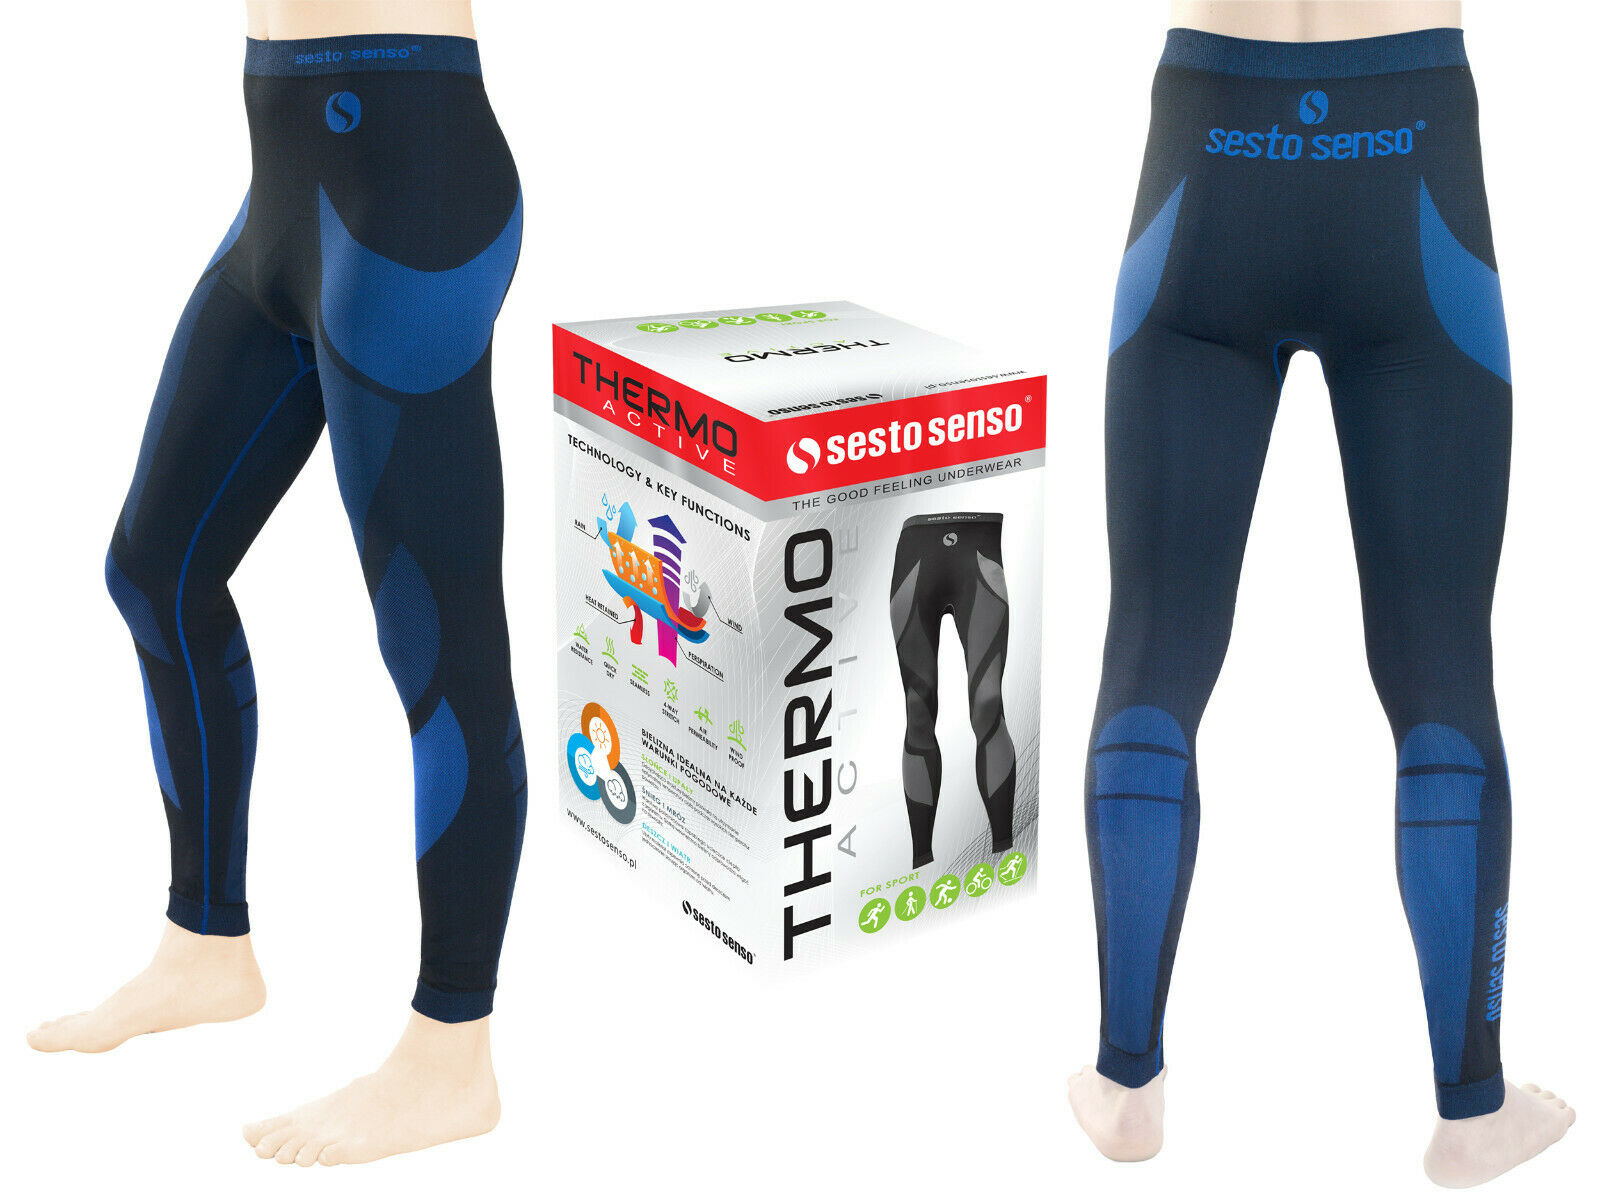 SESTO SENSO THERMO ACTIVE MEN'S TROUSER ANTI ALLERGIC SOFT LIGHT WEIGHT STRETCHY